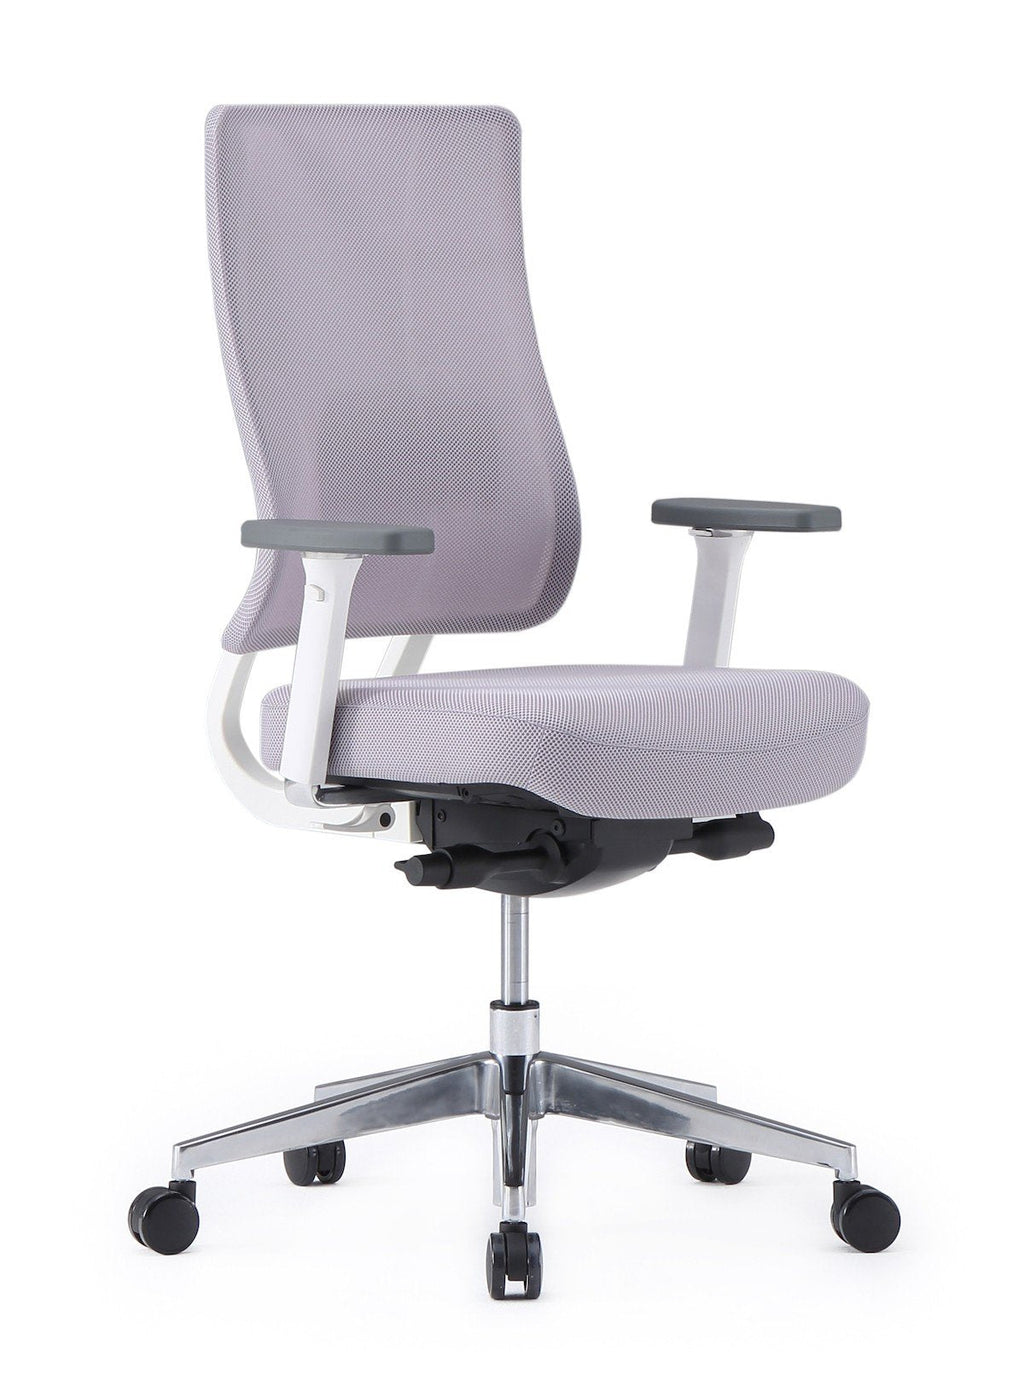 X Trans Mesh Back Ergonomic Task Chair - White